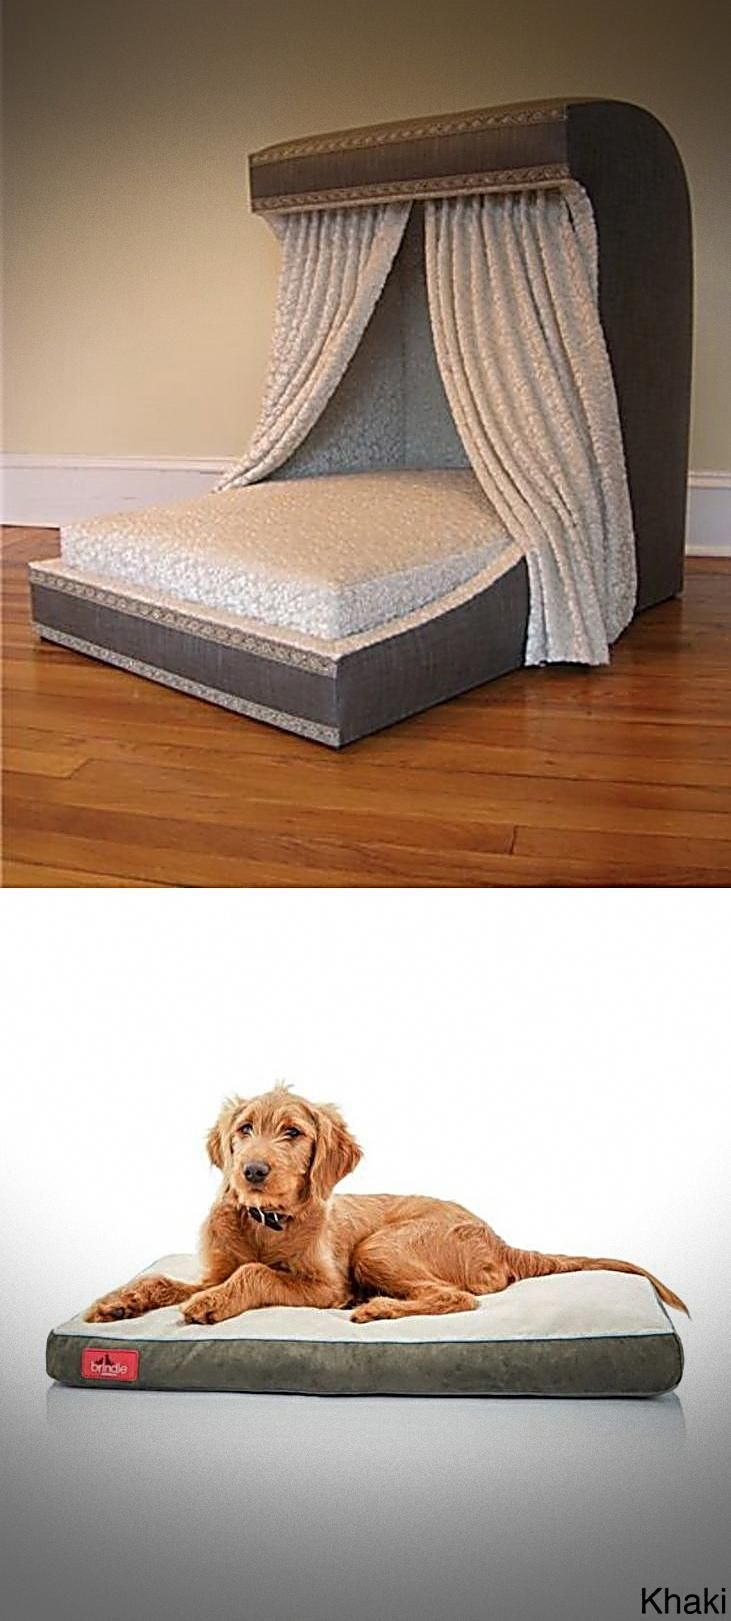 Best Doggie Beds For Large Small Dogs Checking Out The Dog Beds Dog Ramps For Bed Or Even Get Extra Large Dog Be Dog Bed Large Extra Large Dog Bed Dog